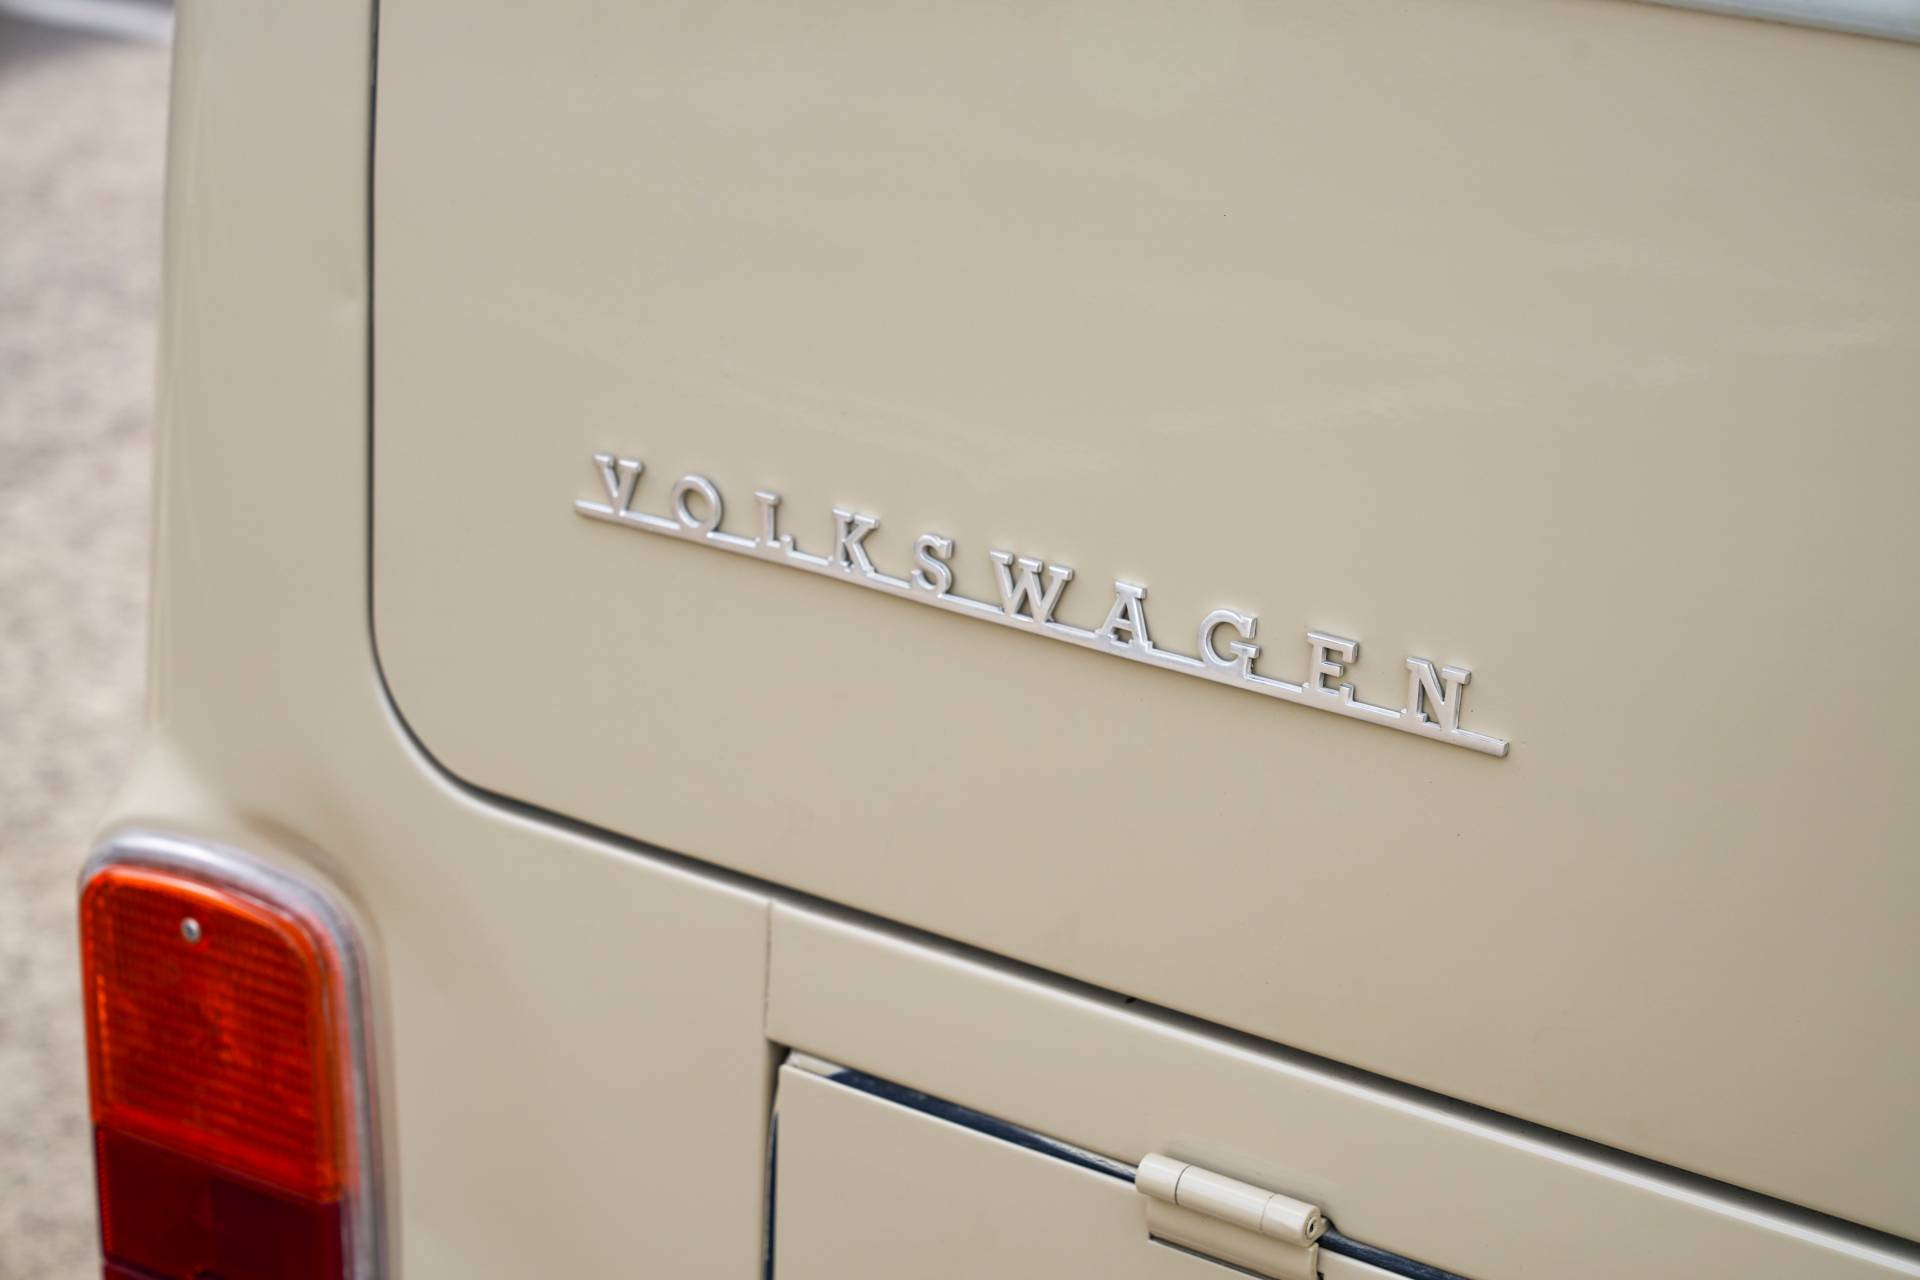 Volkswagen-Type-2-1972-with-e-Golf-engine-12